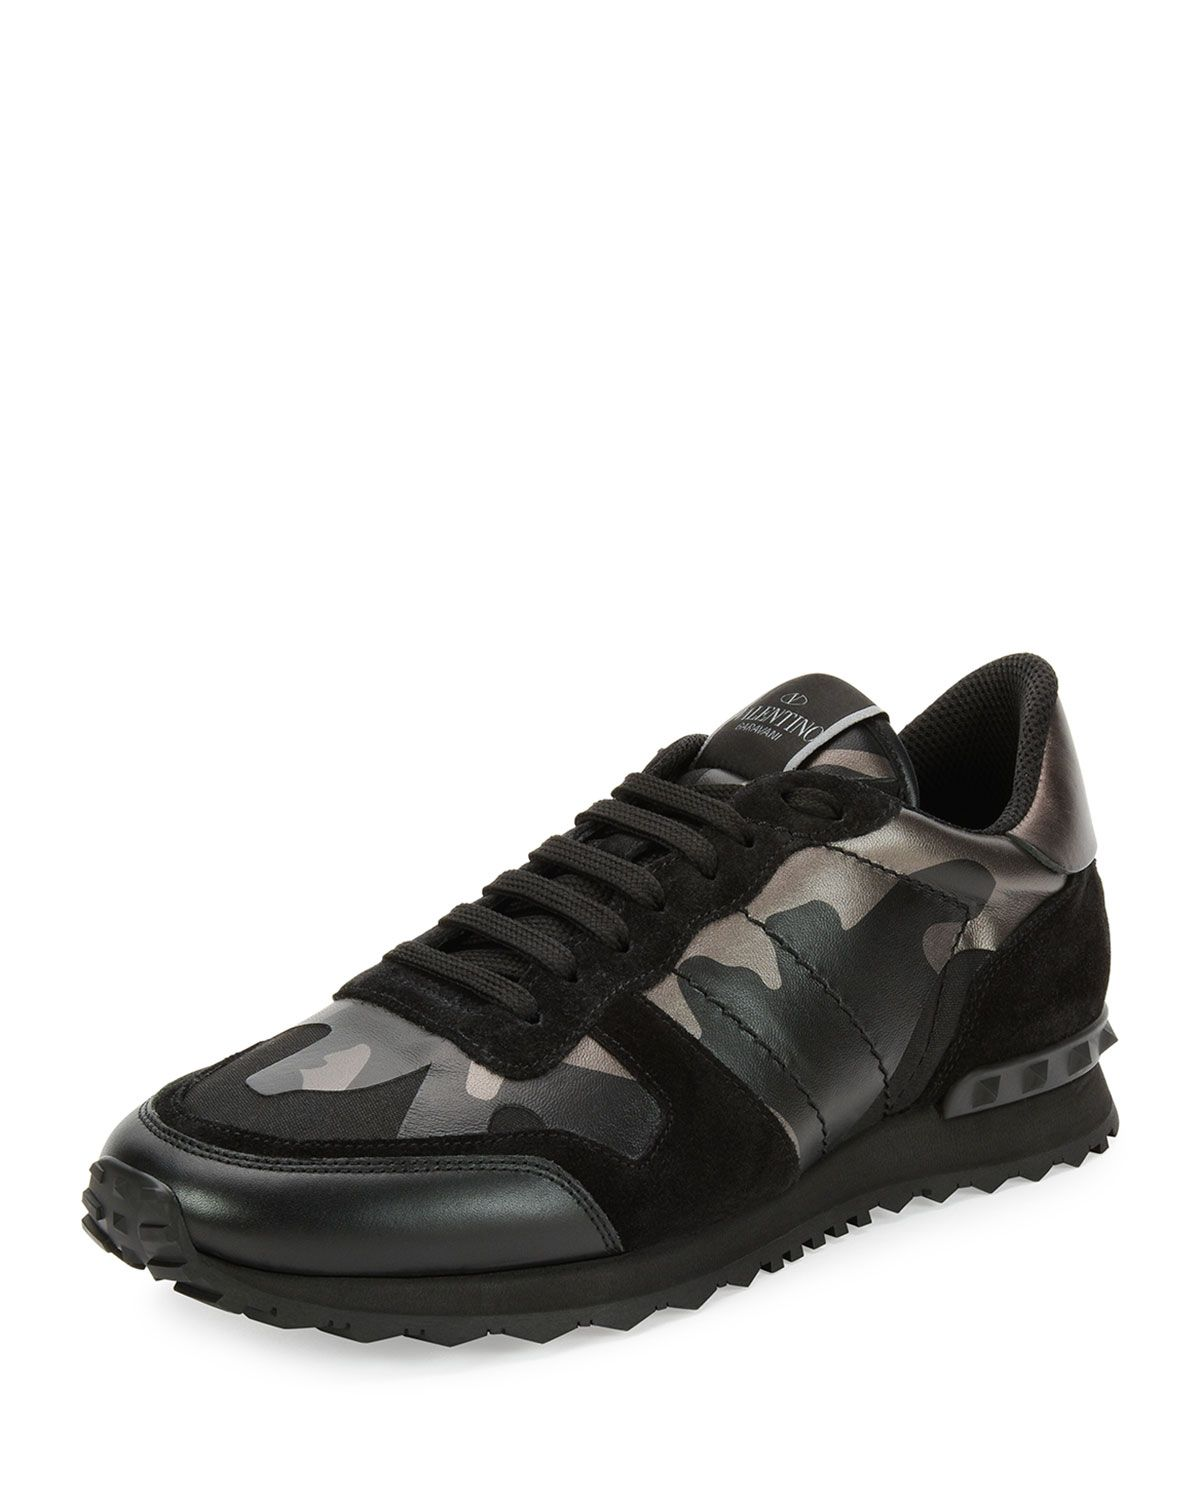 panelled camouflage sneakers - Red Valentino LbWoya